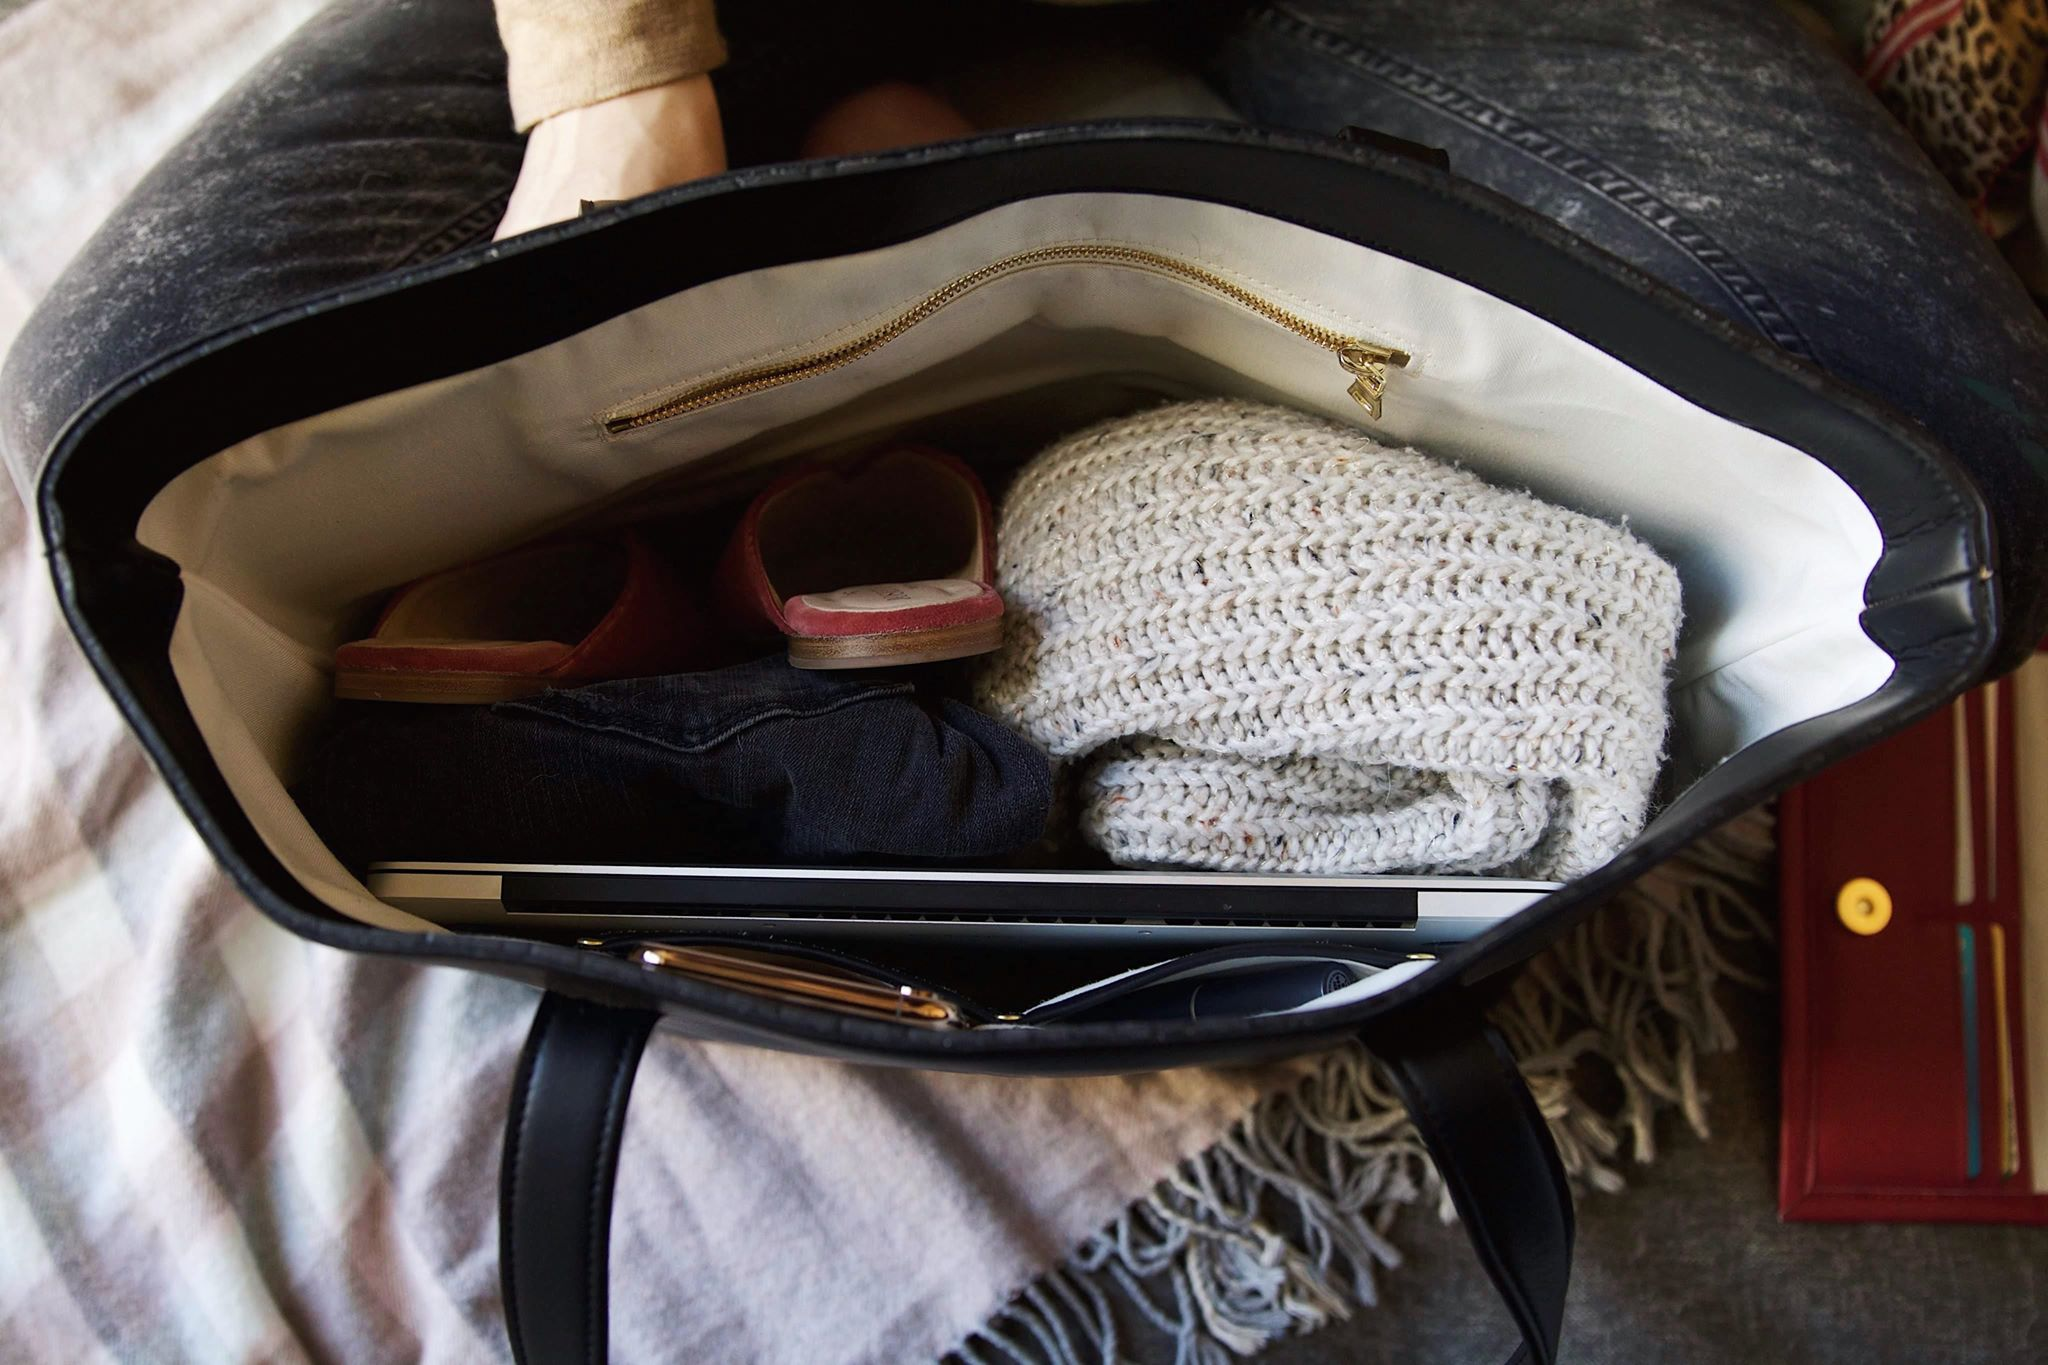 Recycled Plastic Bottles Make For The Perfect Tote / World Threads Traveler